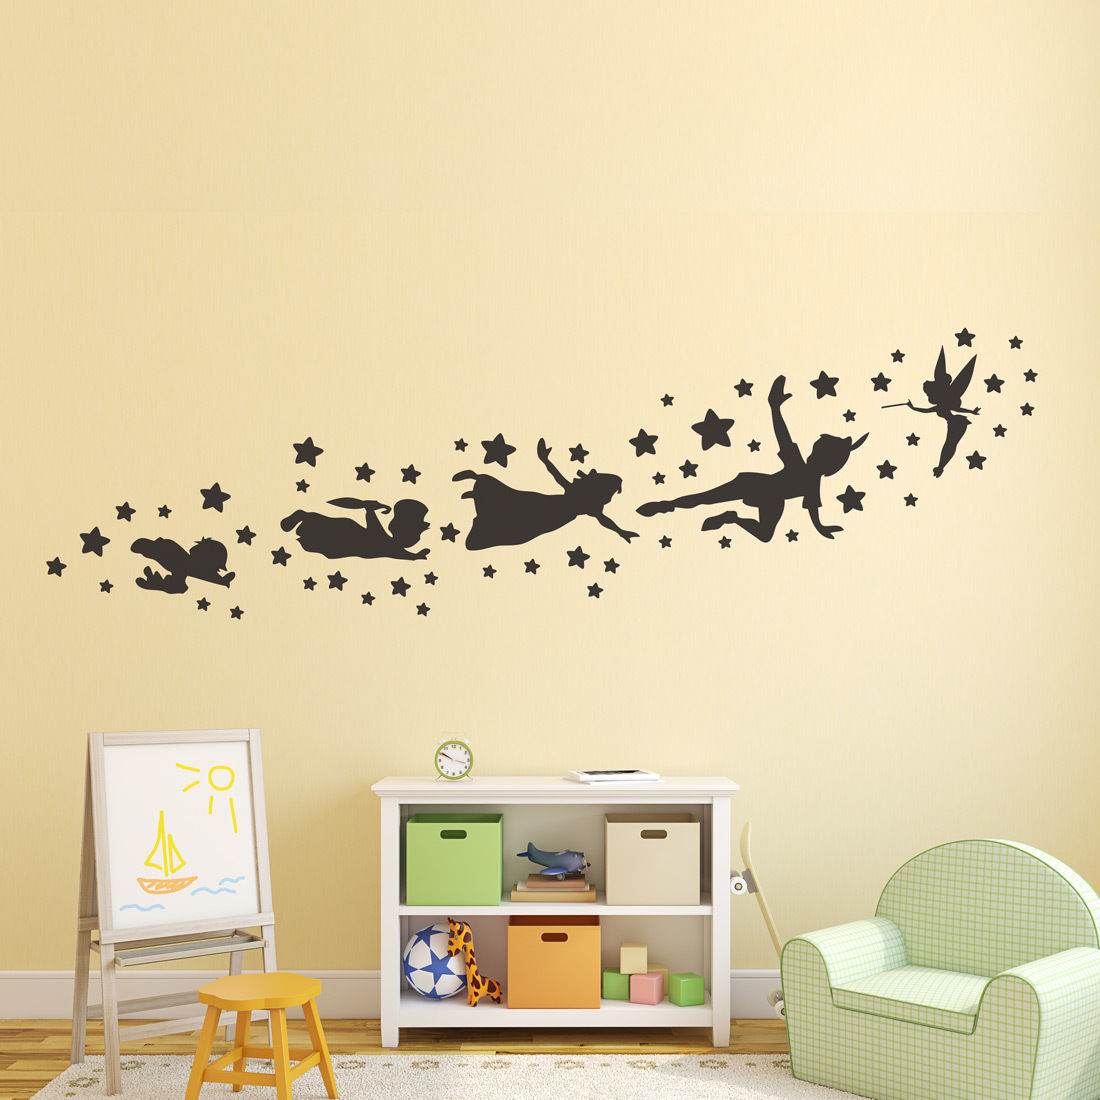 Wonderful Peter Pan Wall Decal Removable Vinyl Sticker Mural